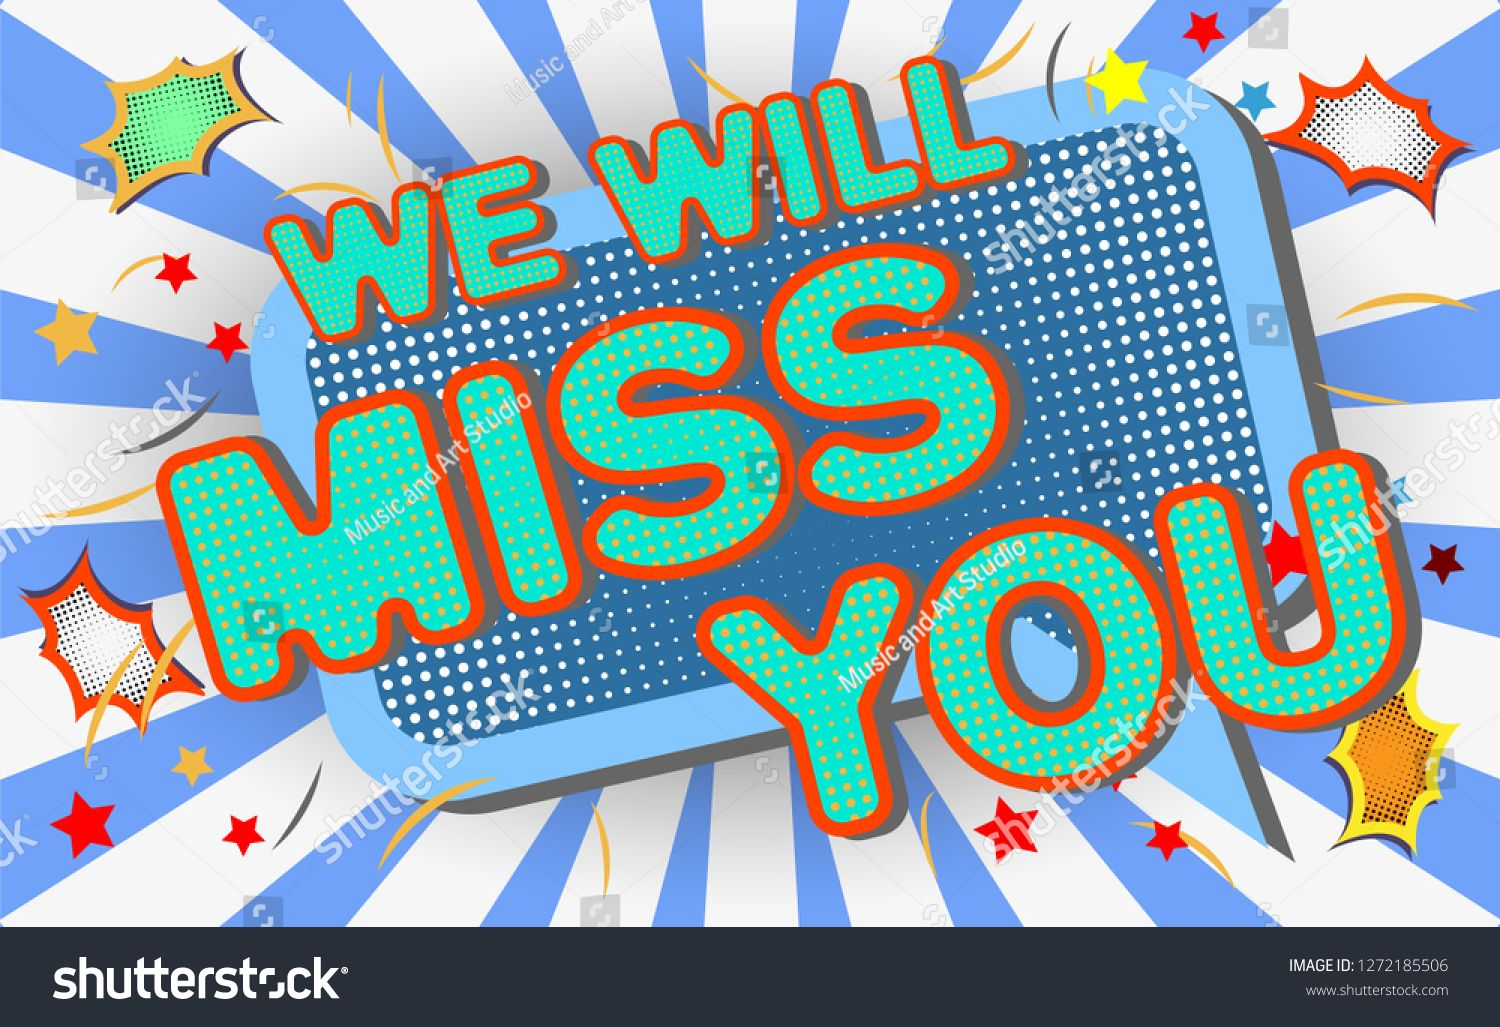 Farewell Party Template We Will Miss You Text Design Pop Art Comic Style Colorful Background For T Shirt Print Banner In 2021 Party Background Banner Template Party